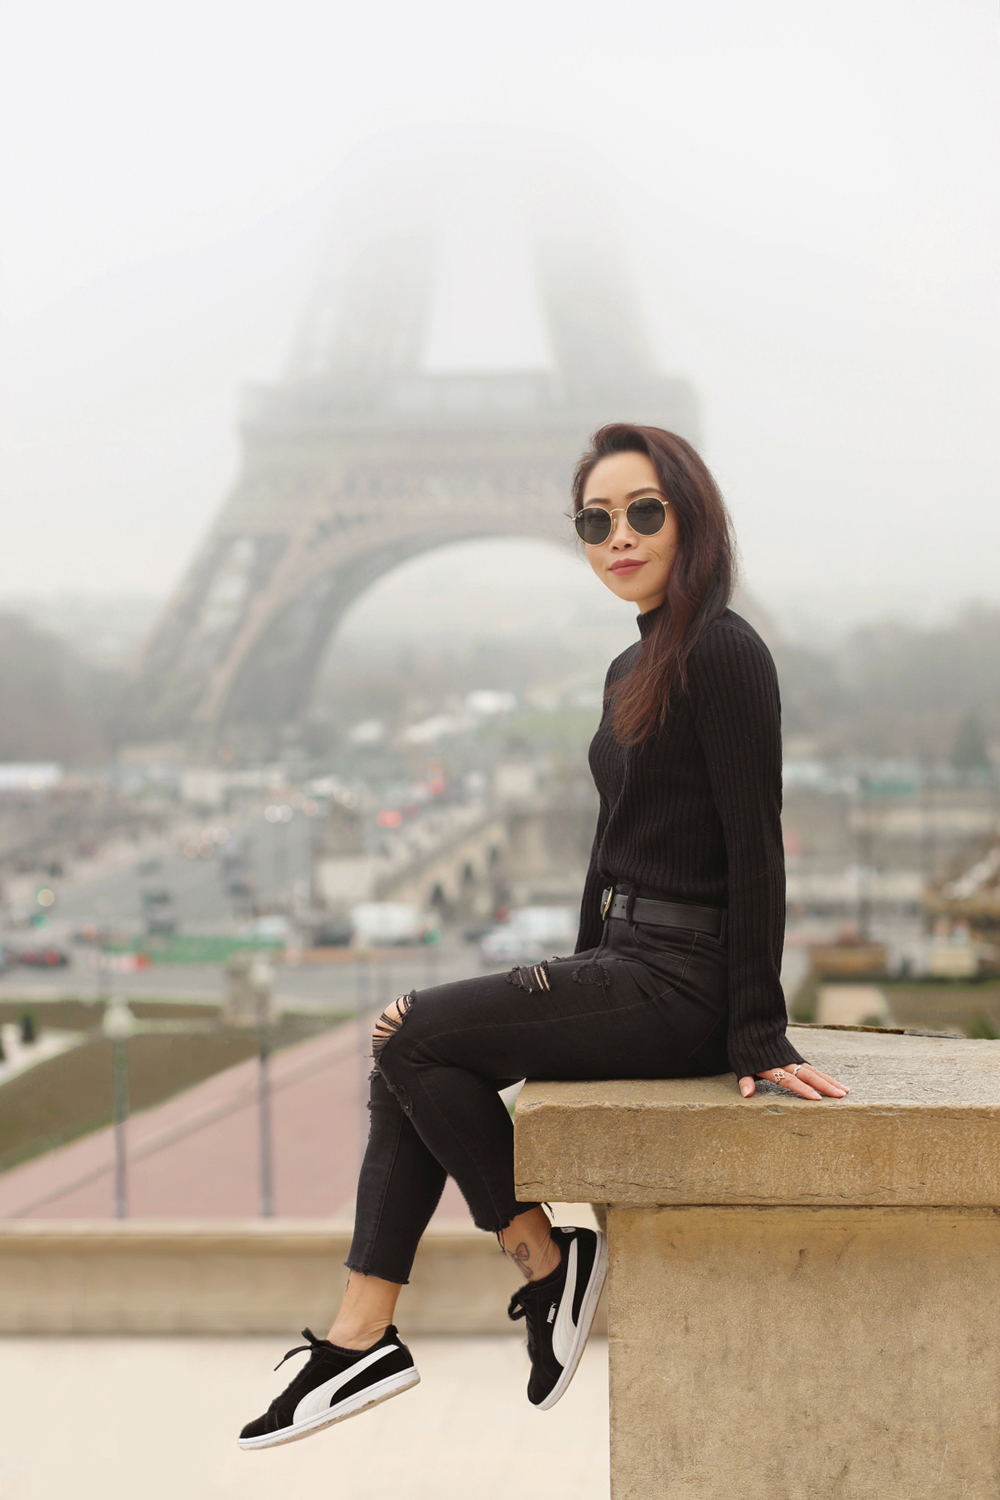 05paris-eiffeltower-travel-ootd